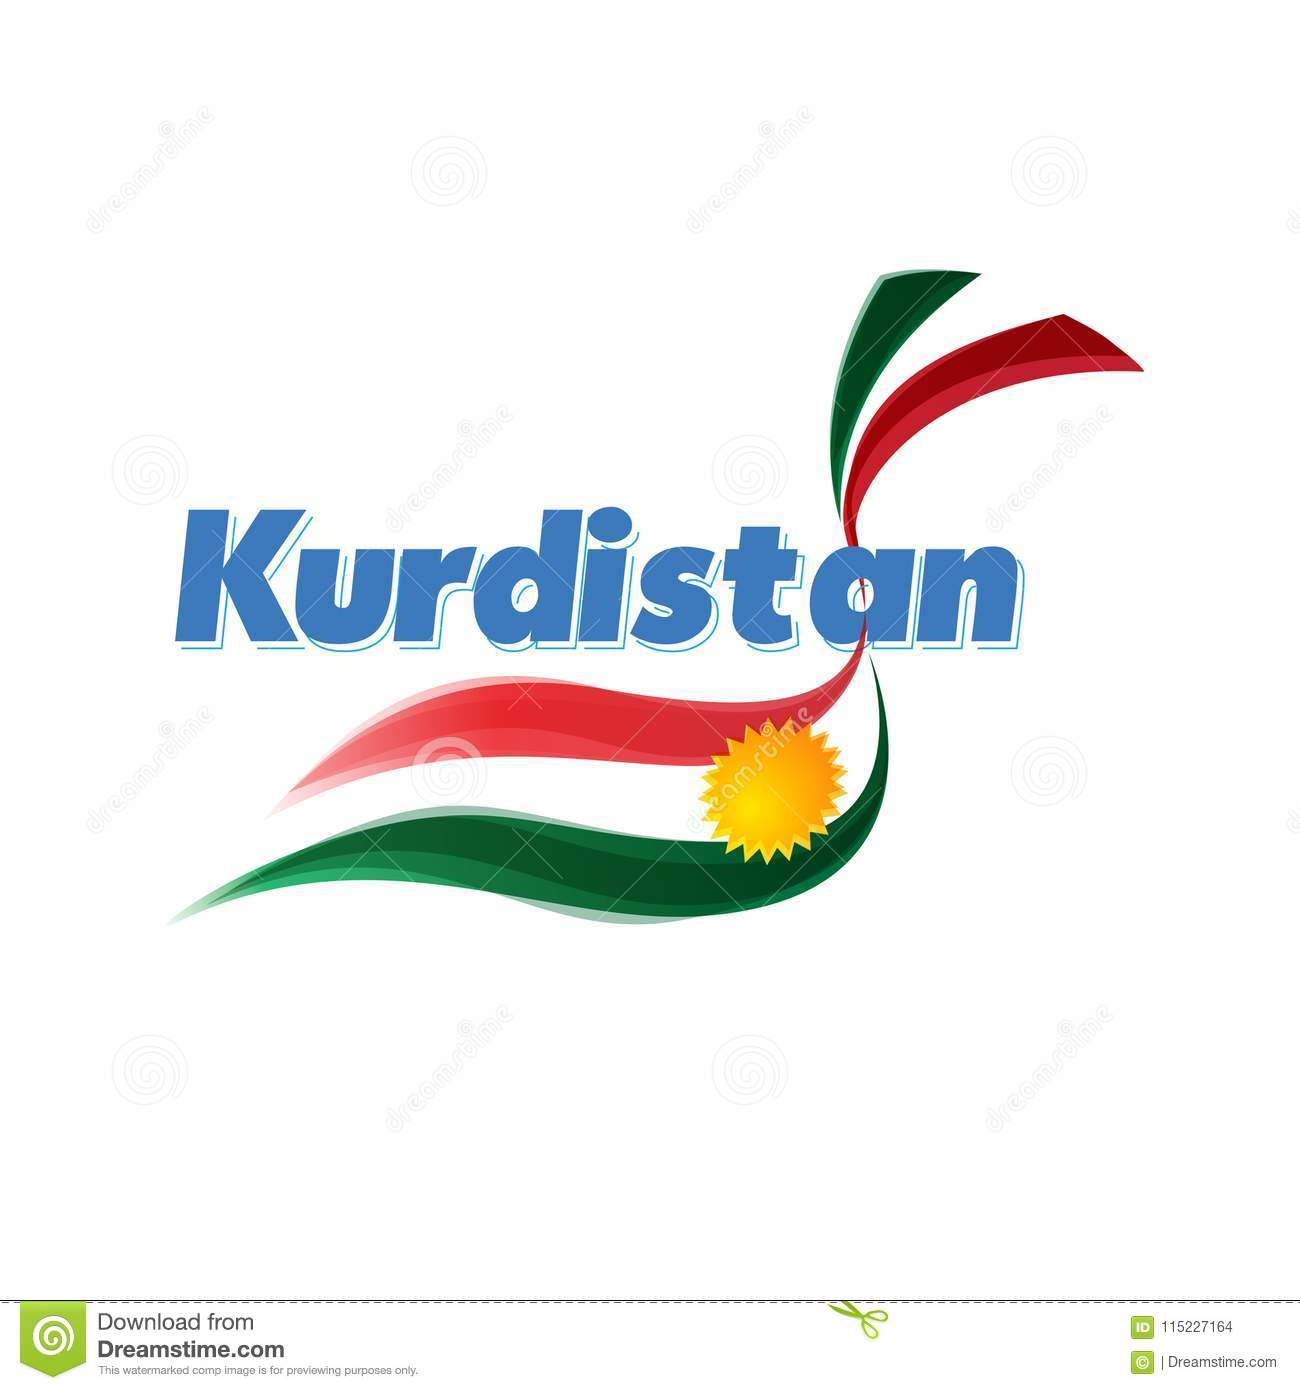 Image result for kurdistan name